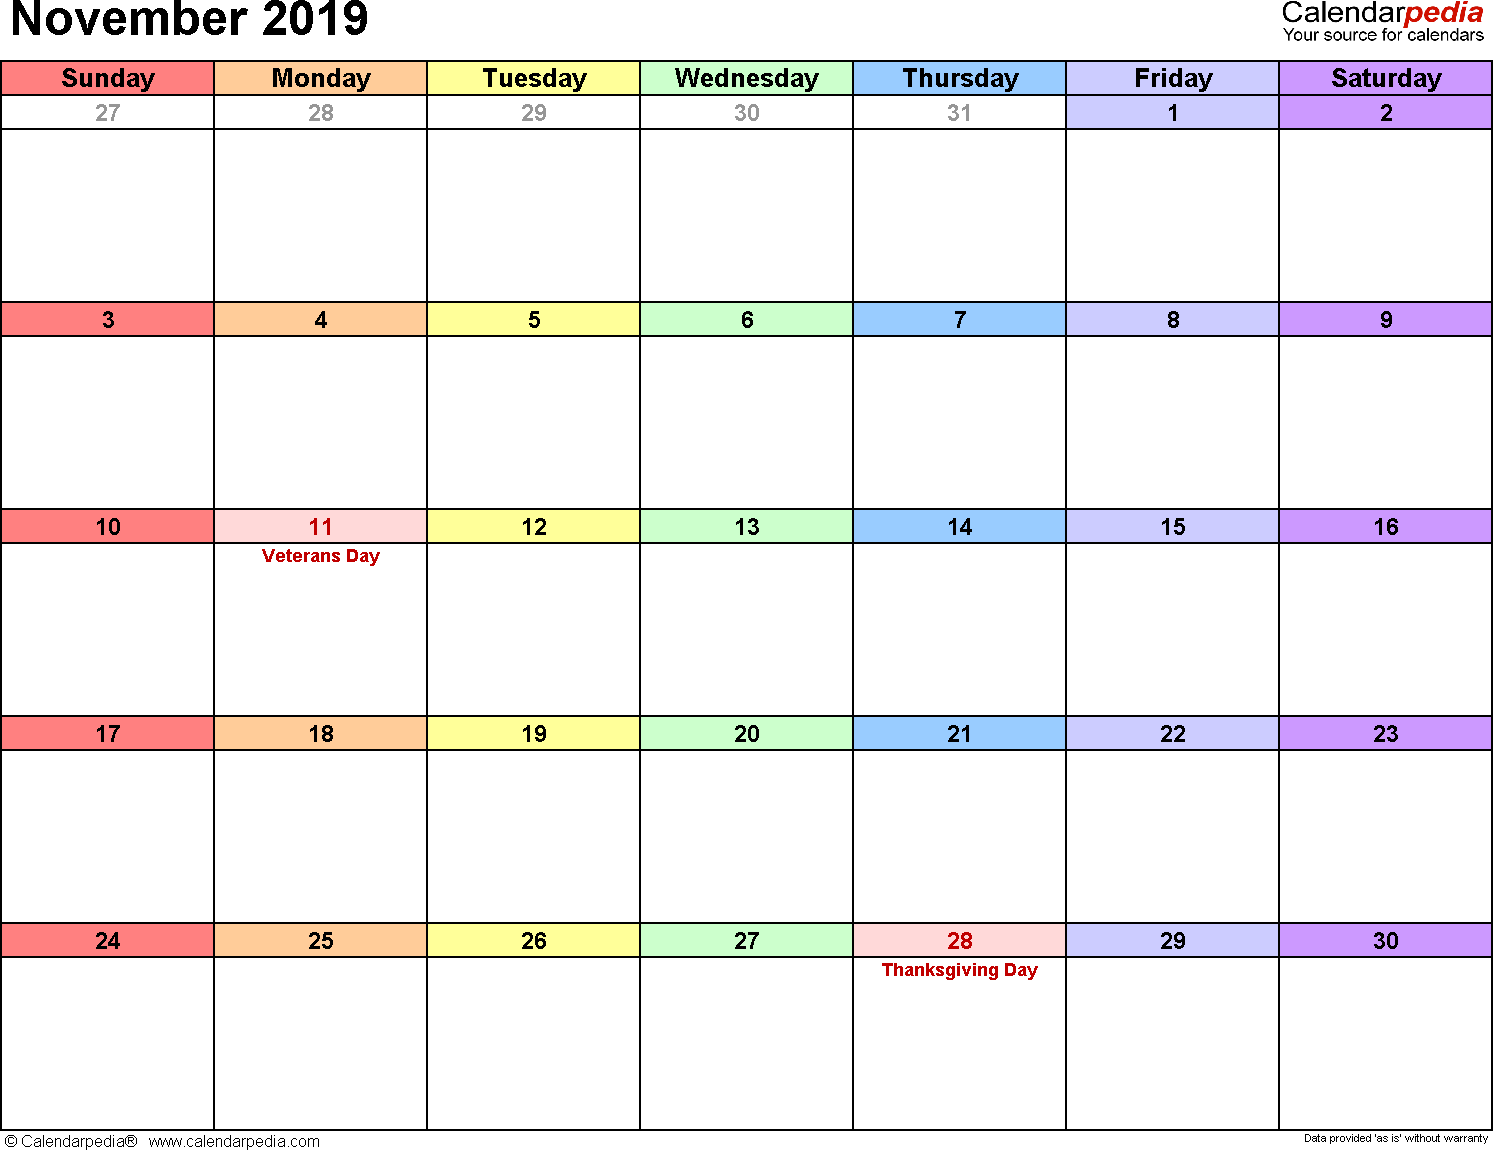 Sometimes it is handy to have a calendar for your current month on your cubical wall. November 2019 Calendar   Templates for Word, Excel and PDF